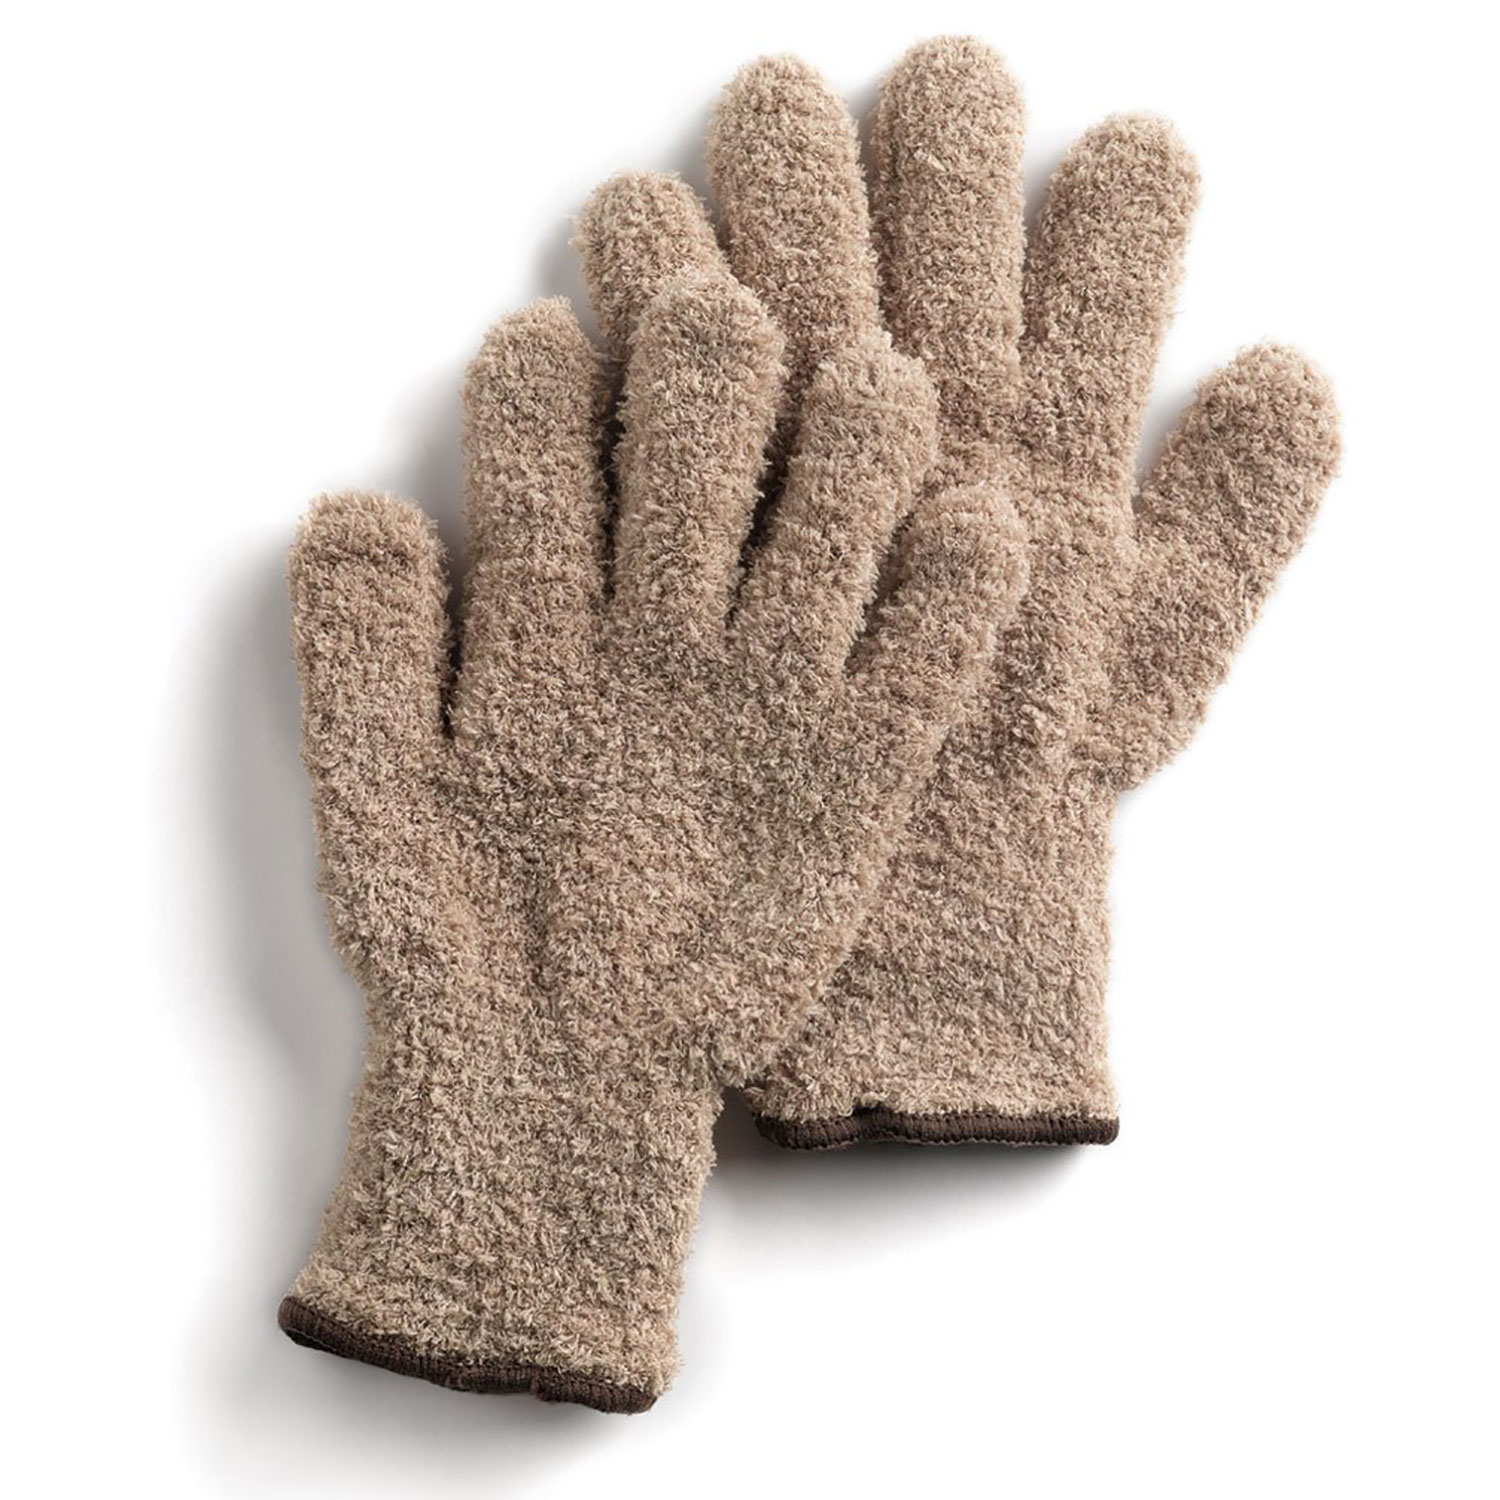 CleanGreen Microfiber Cleaning and Dusting Glove